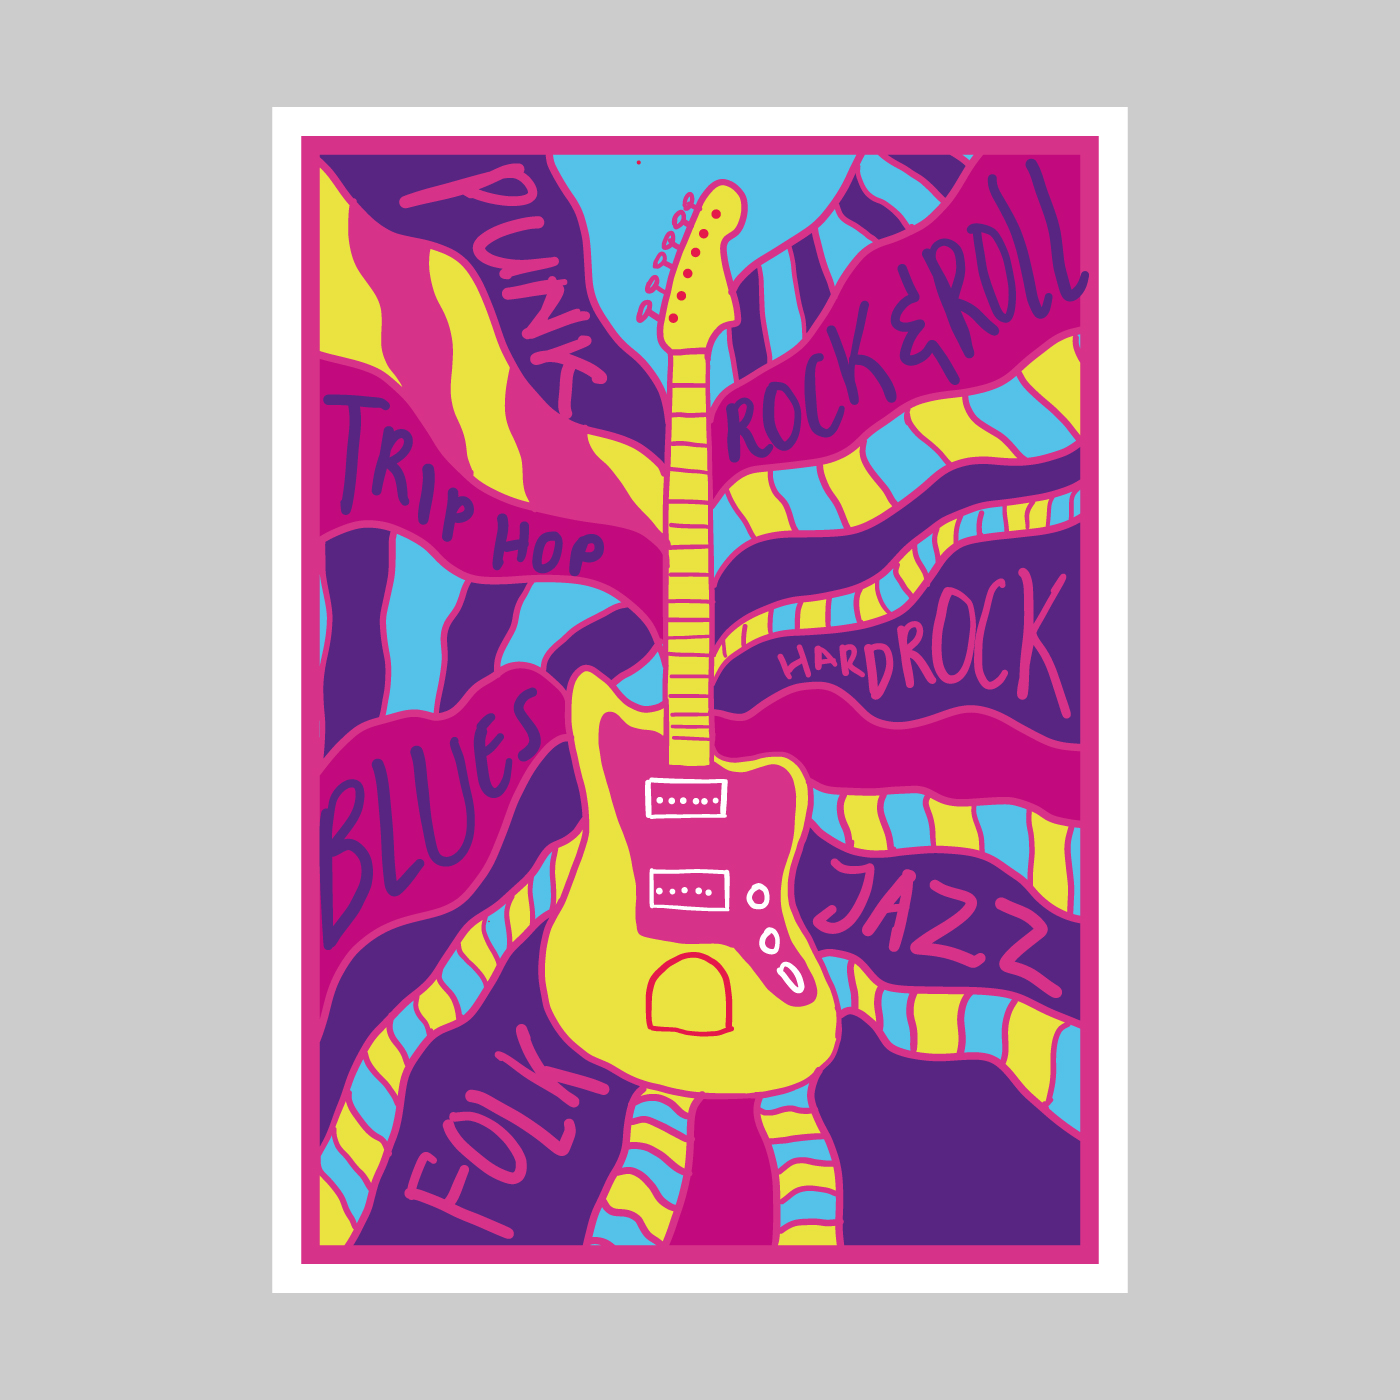 psychedelic-music-poster-vector.jpg